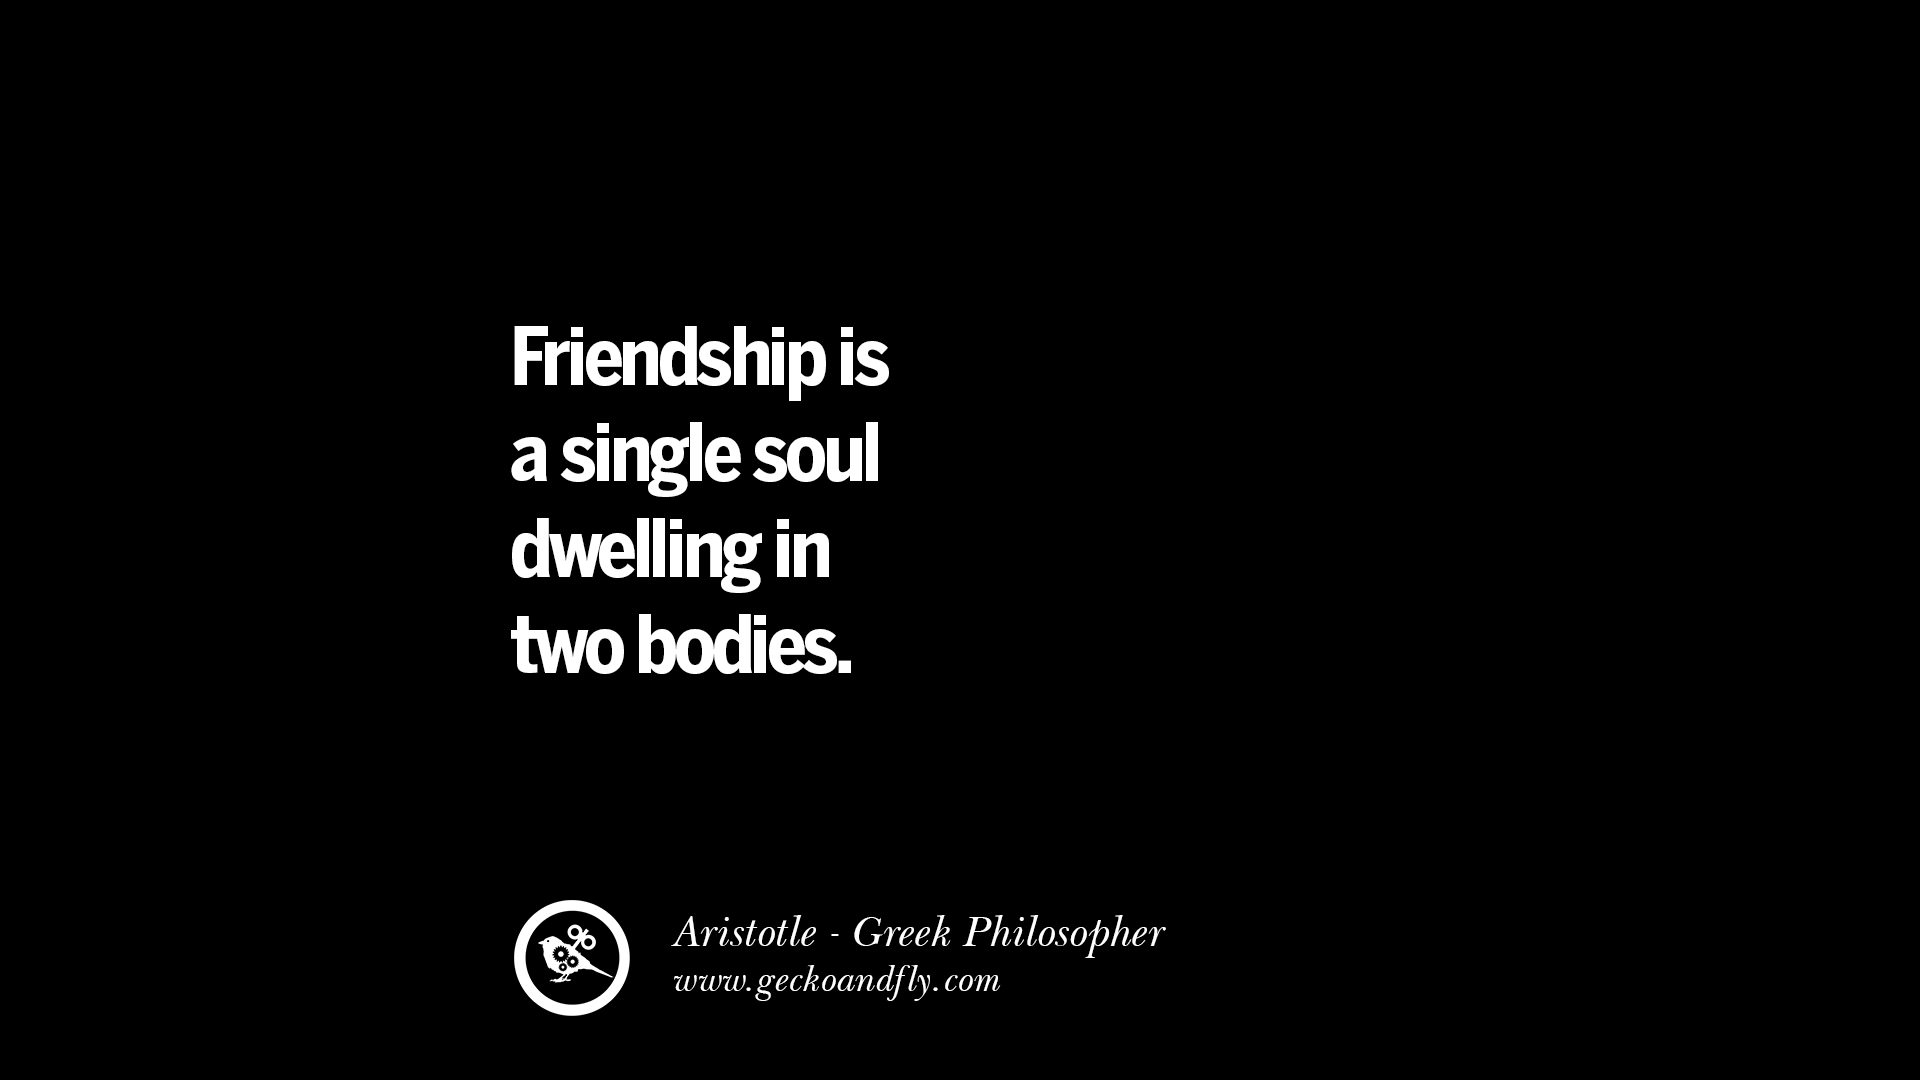 A Quote About Friendship 40 Famous Aristotle Quotes On Ethics Love Life Politics And